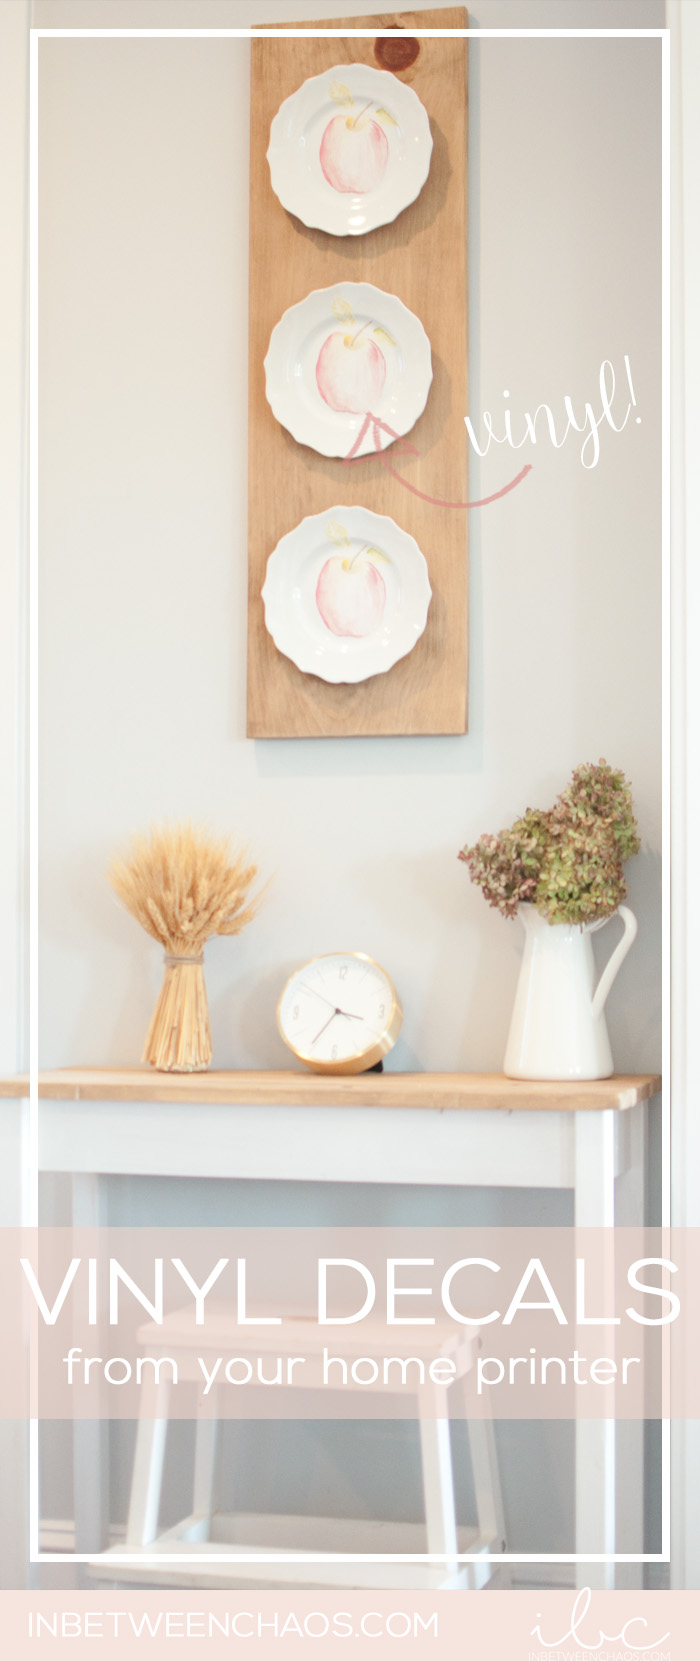 Update your decor for the season with these easy plate decals | inbetweenchaos.com